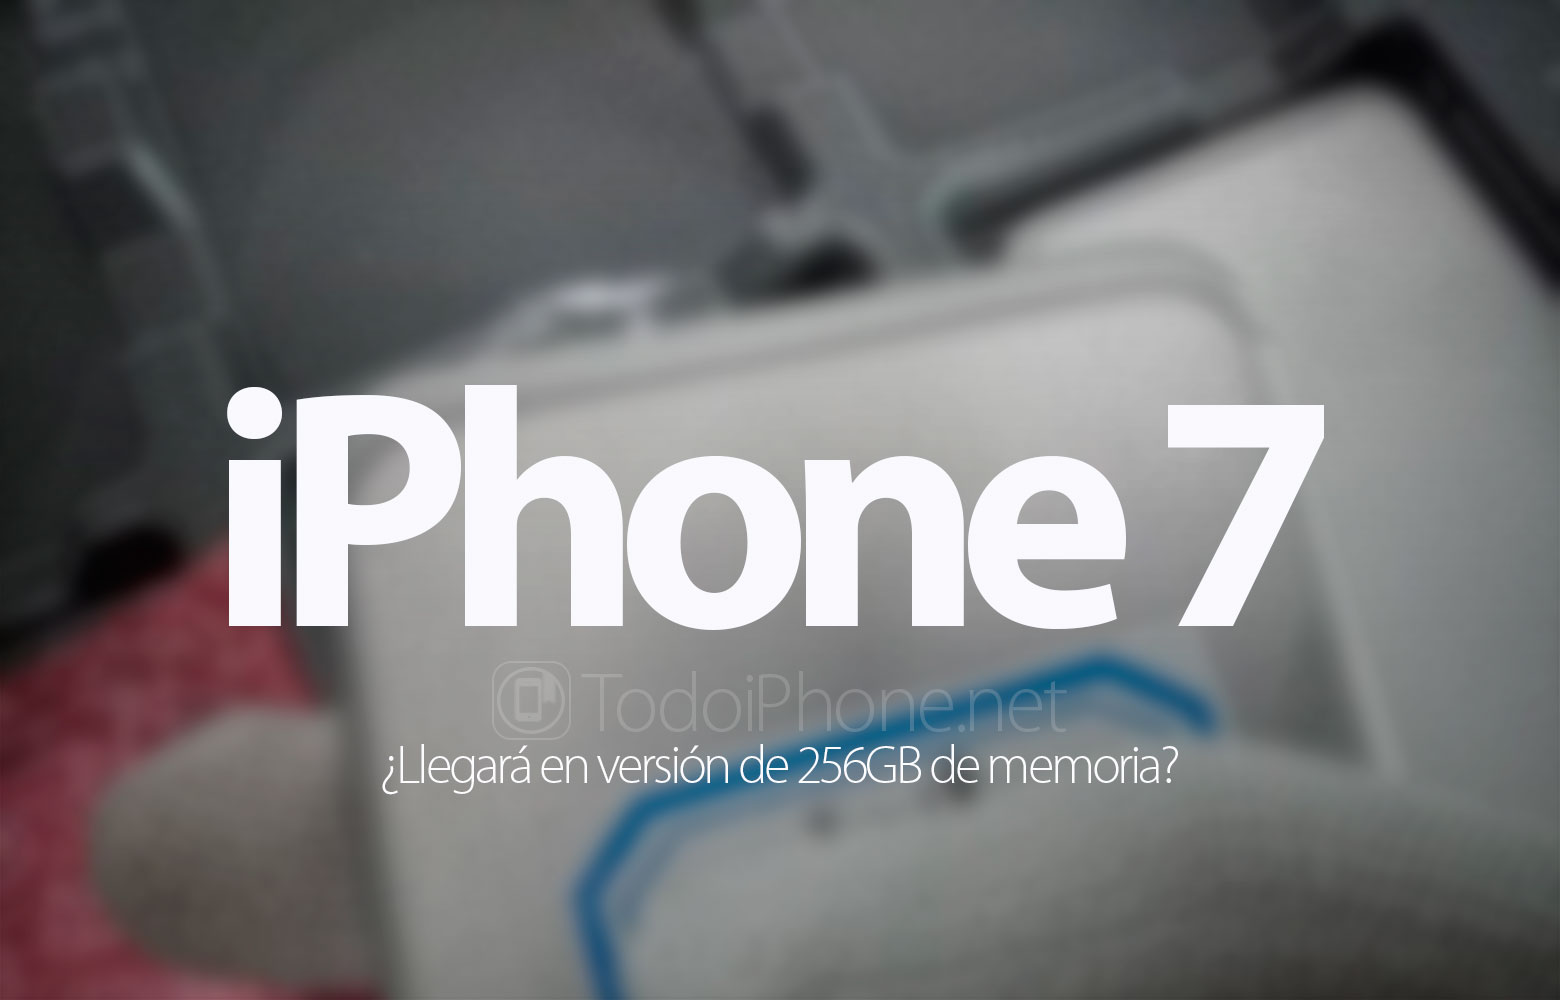 iphone-7-llegara-tambien-version-256gb-memoria